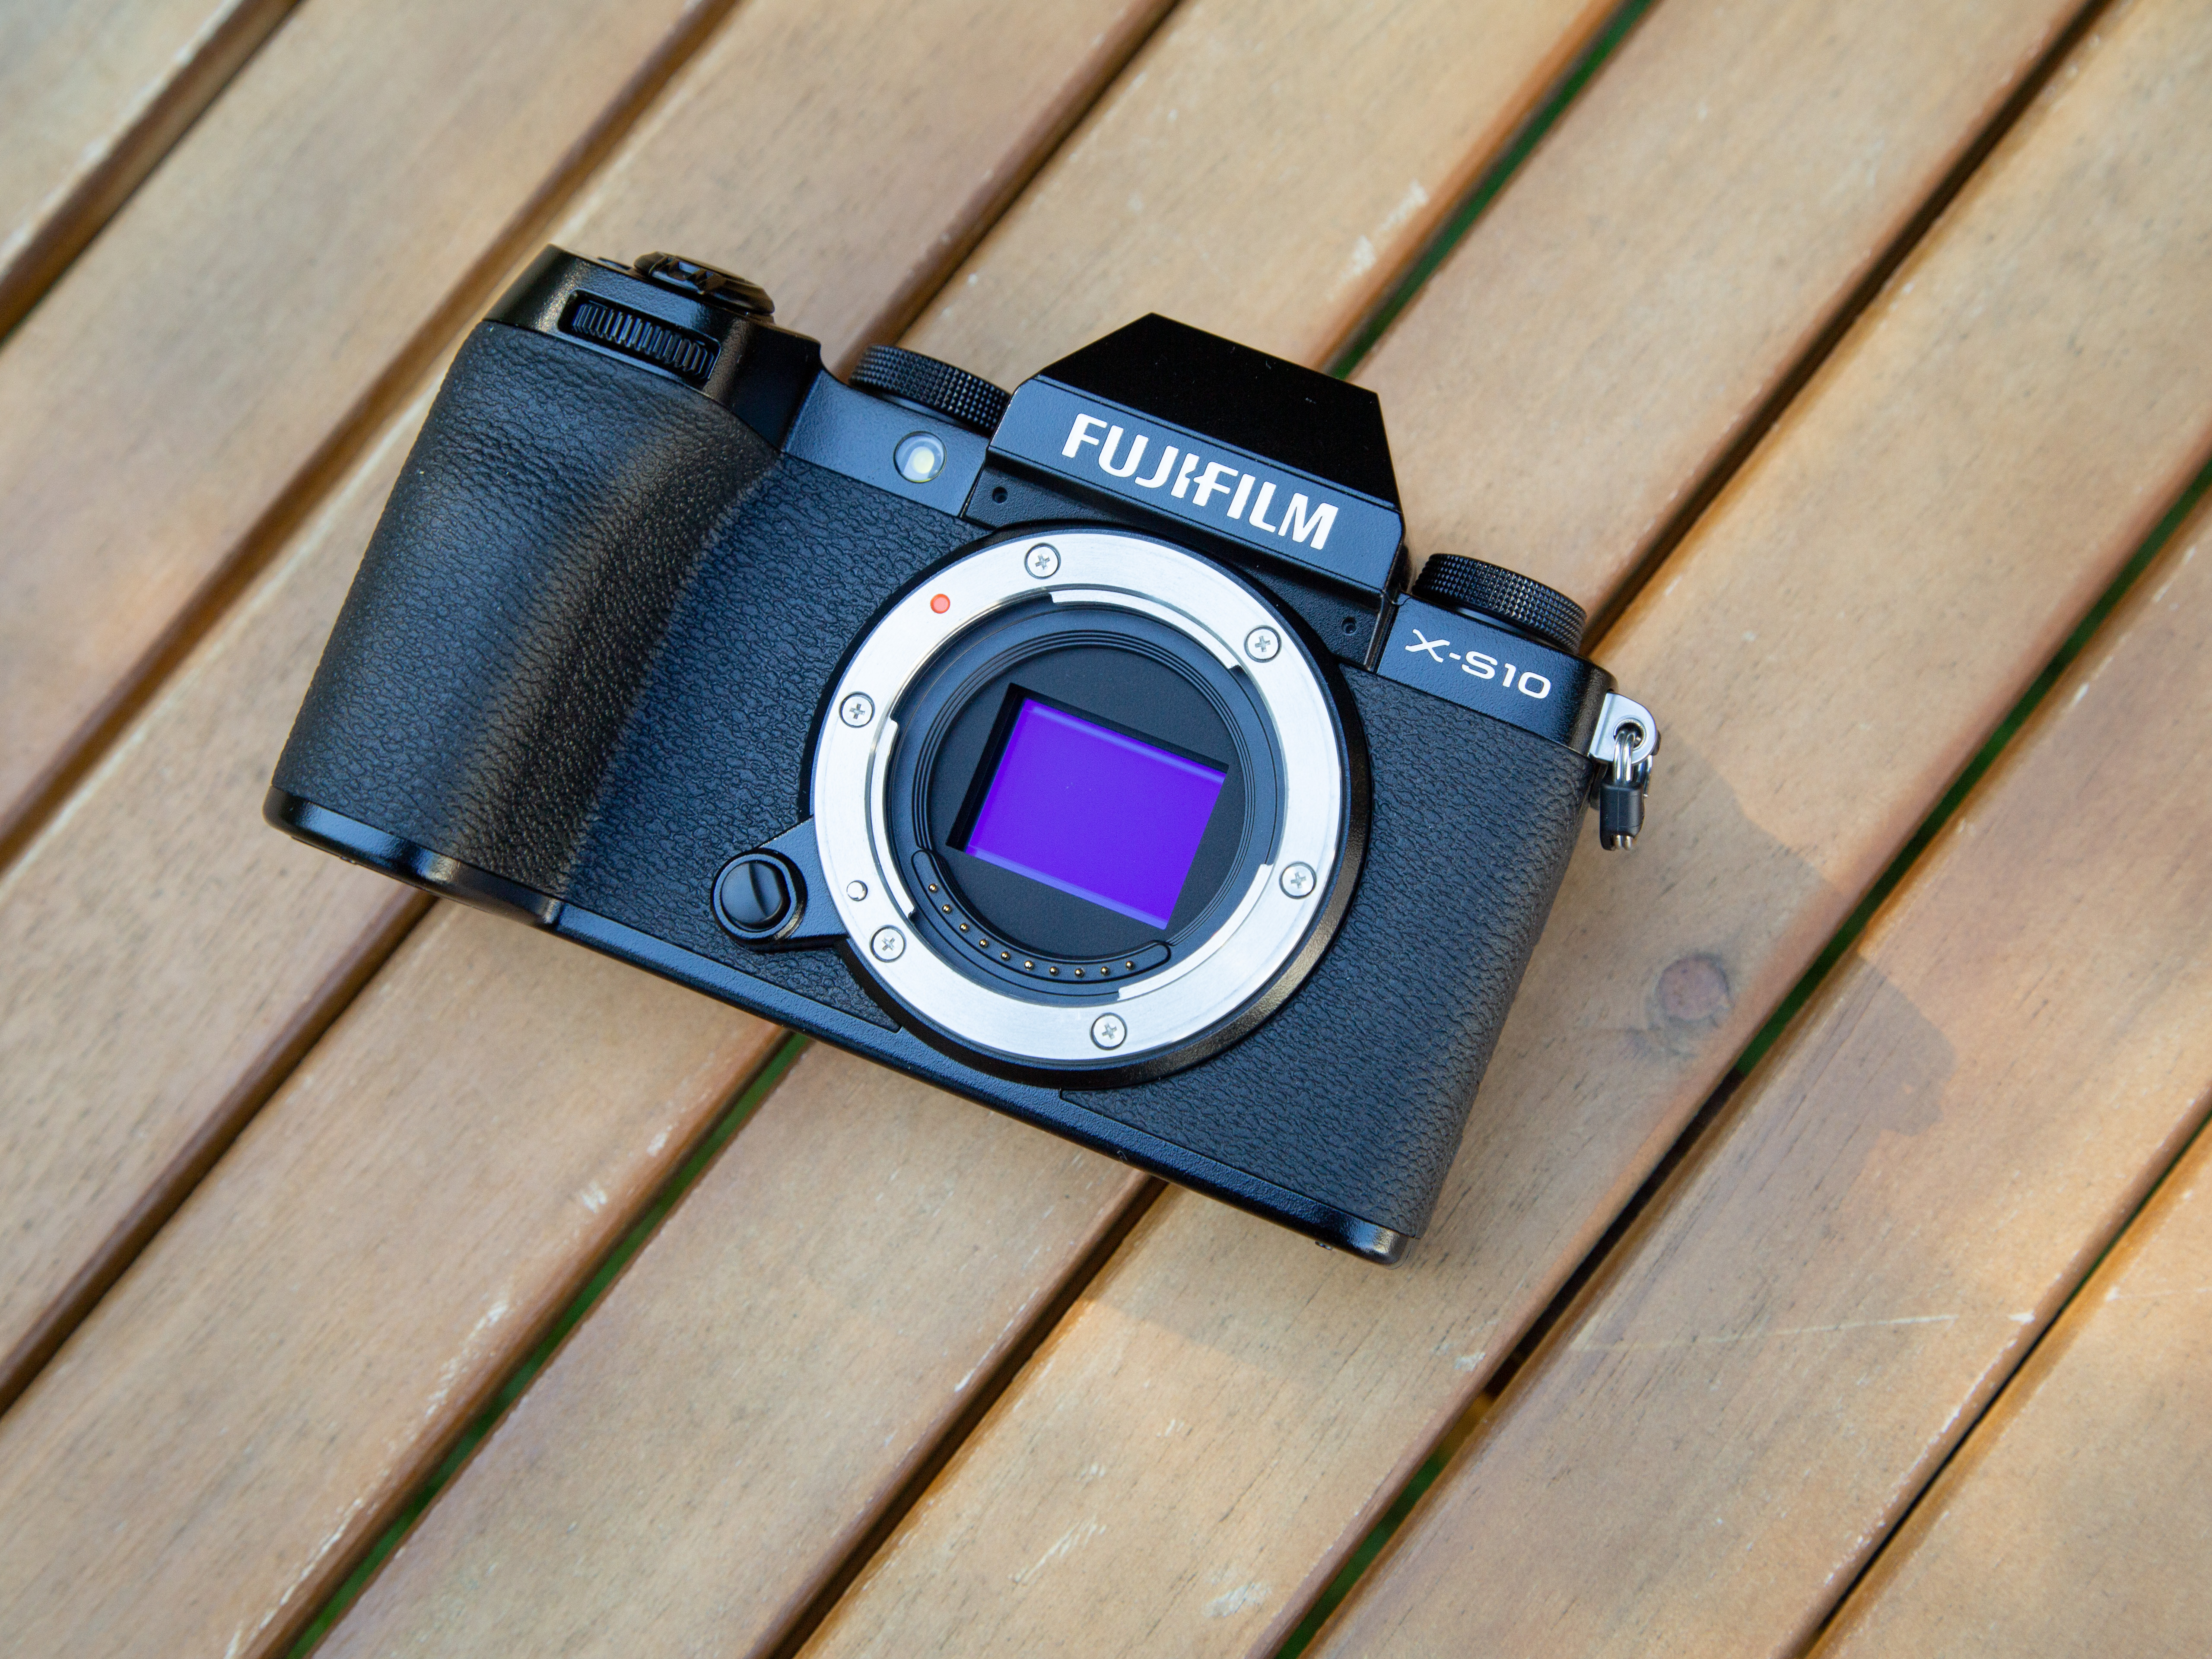 Fujifilm X S10 full review An image stabilized camera for almost ...